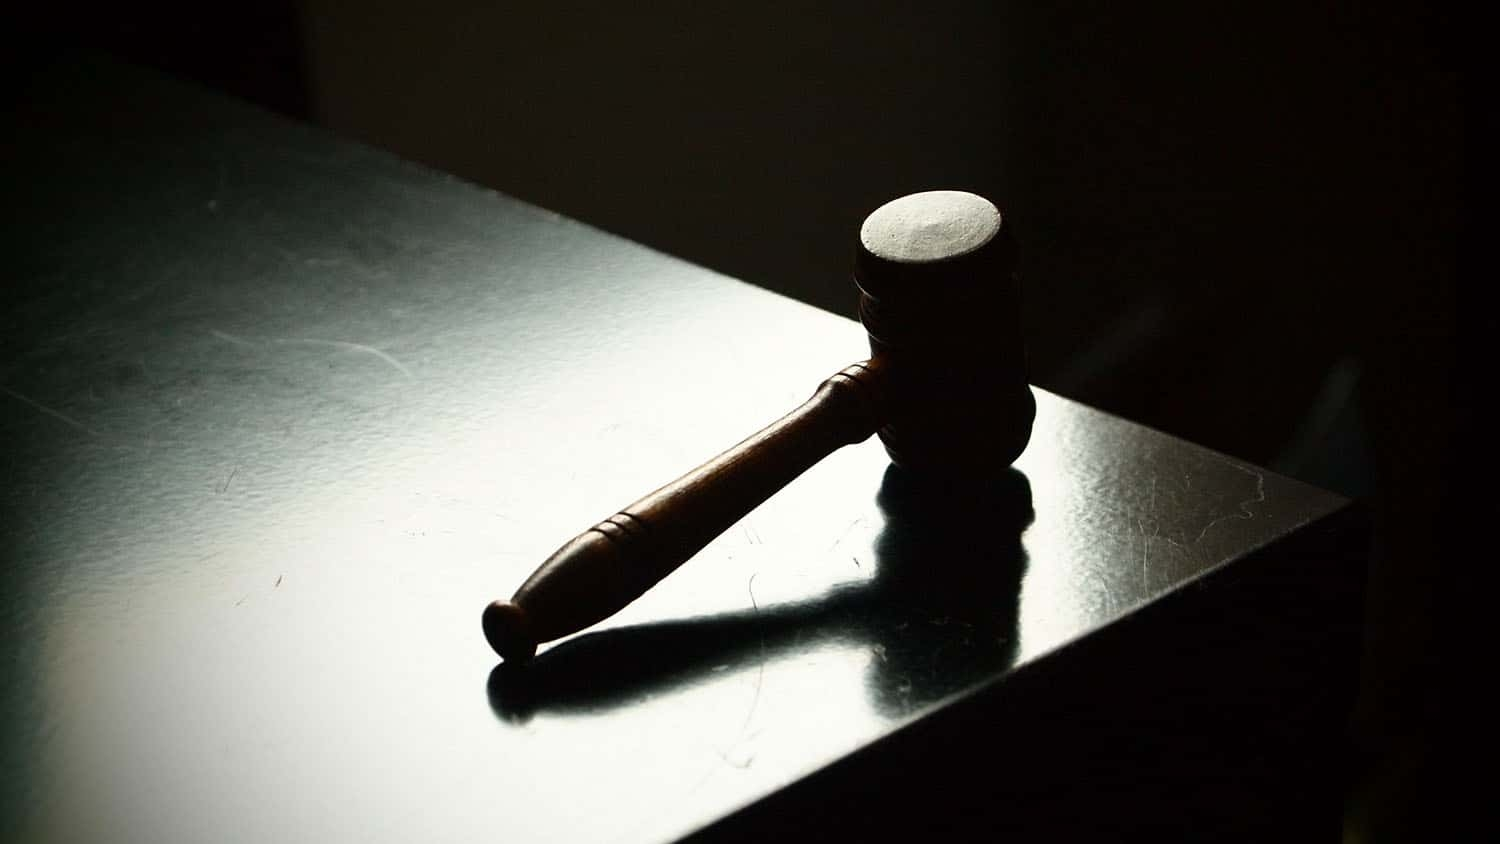 a gavel rests on a table